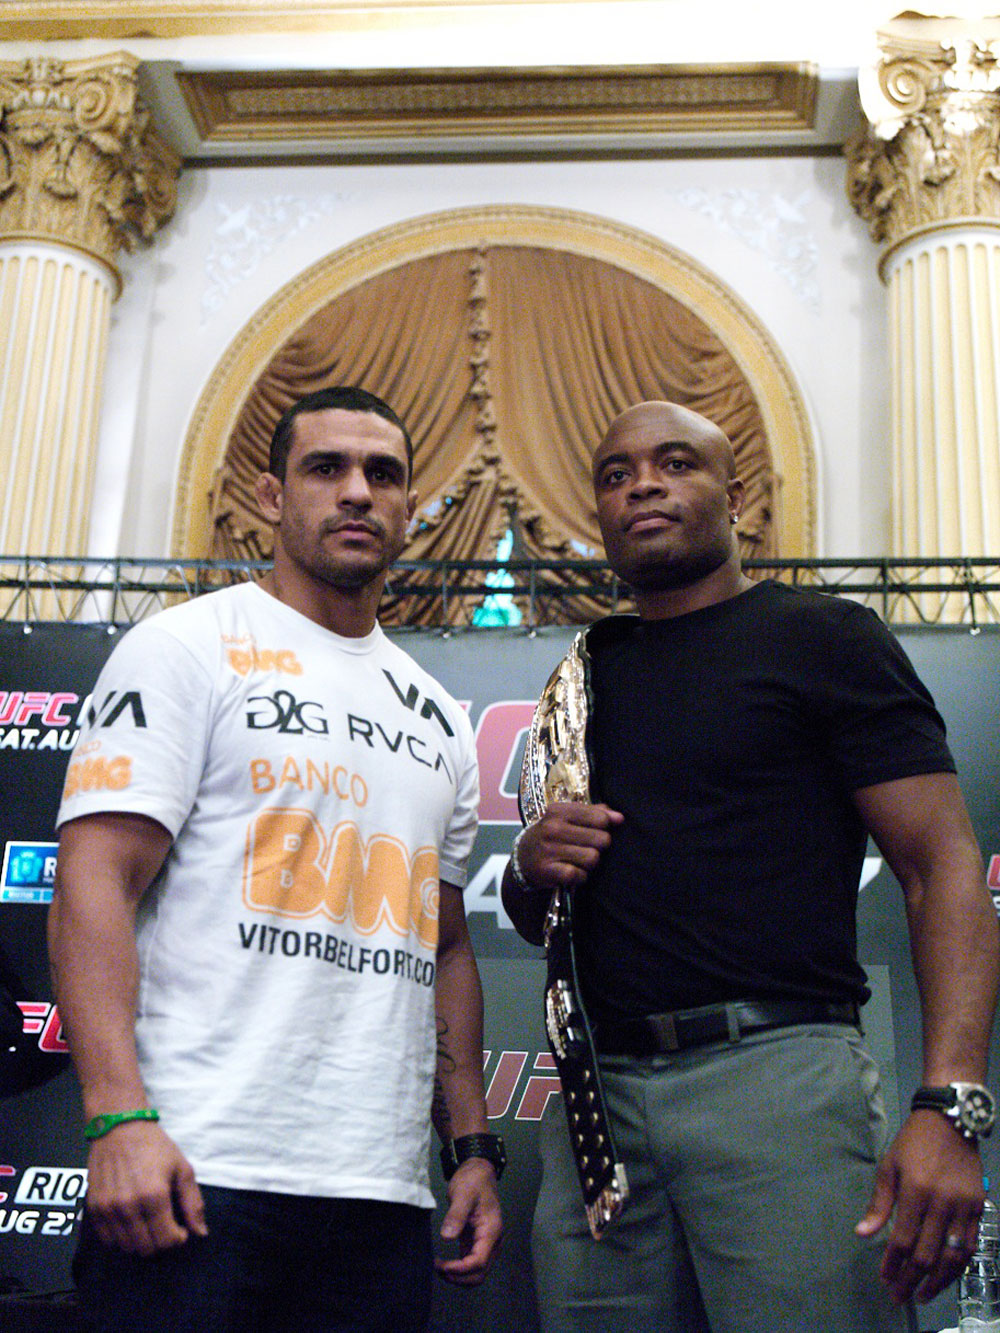 Vitor Belfort &amp; Anderson Silva